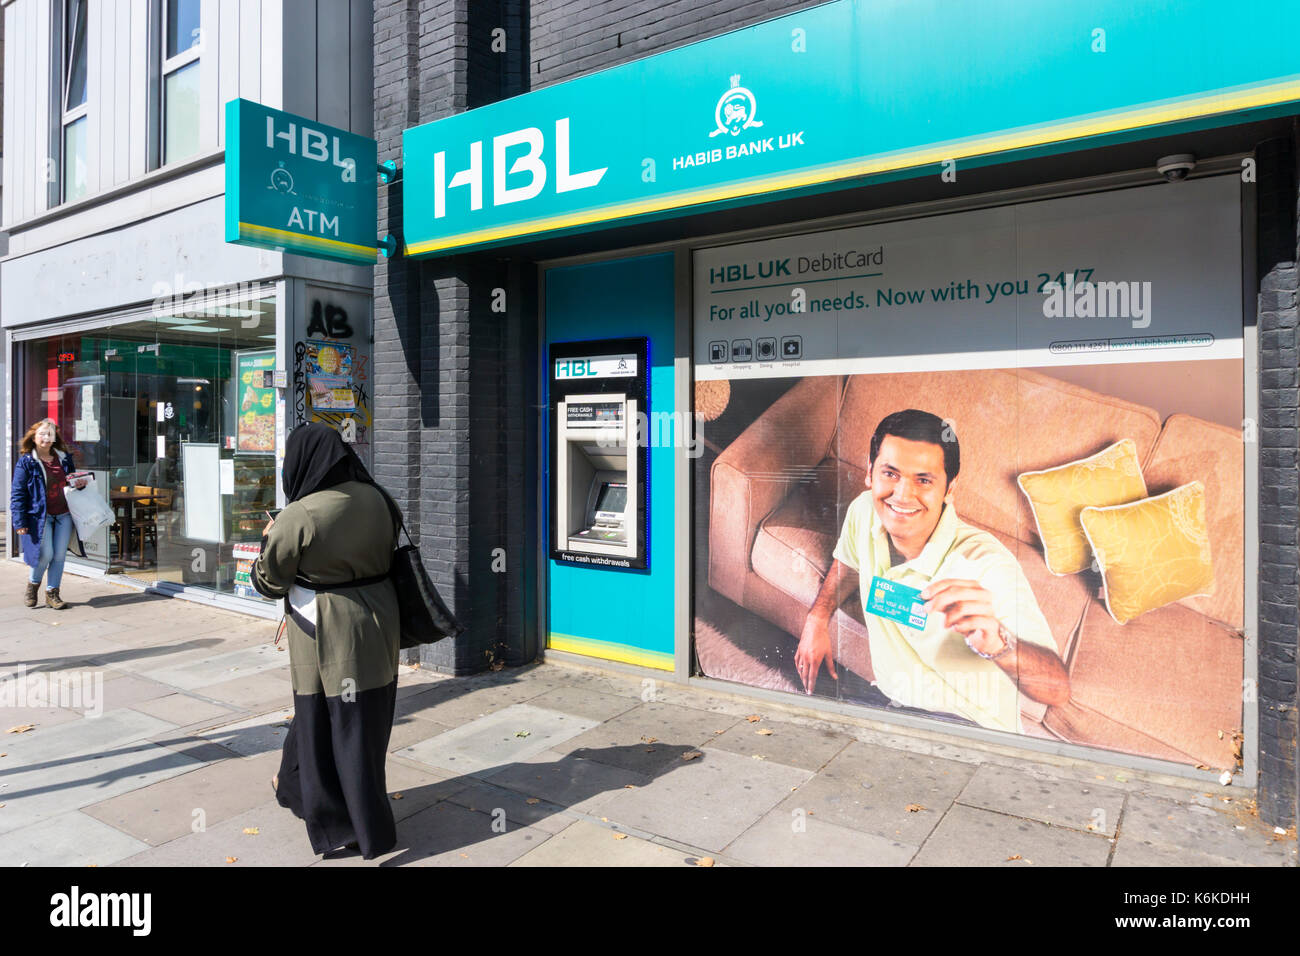 A woman wearing a hijab walks past a branch of the Pakistan based Habib Bank UK and HBL ATM in Whitechapel Road, London. - Stock Image